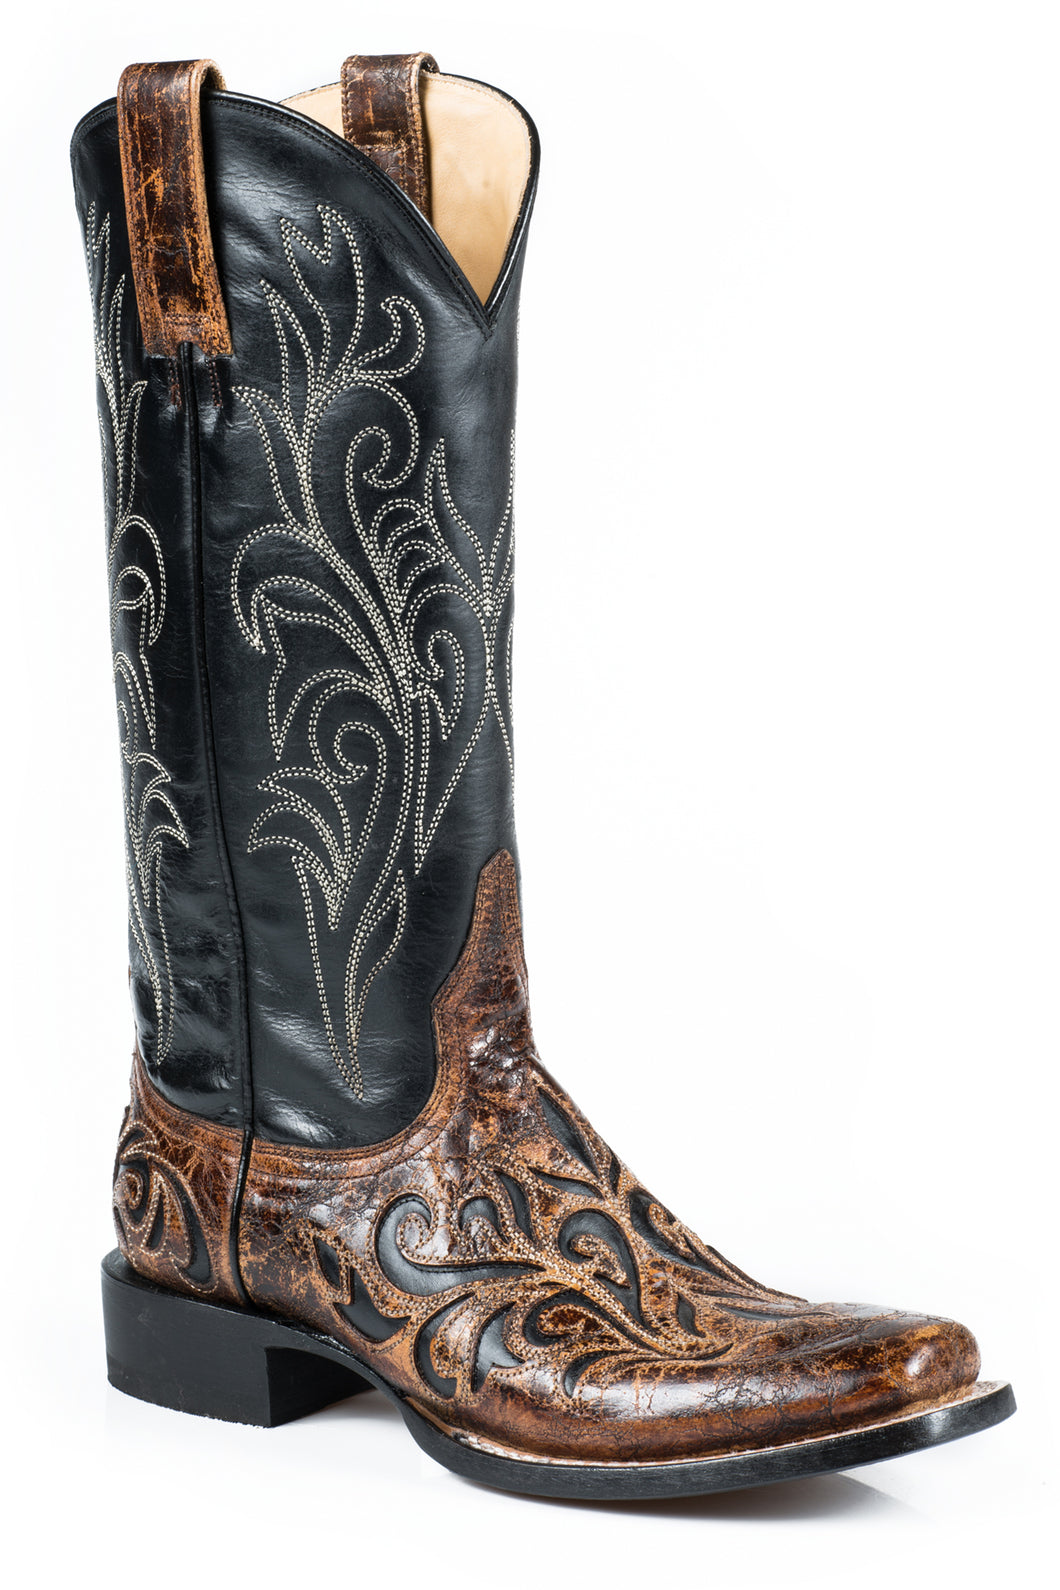 Caroline Boot Ladies Boot Black Vamp Wvntge Brn Crackle Overlay